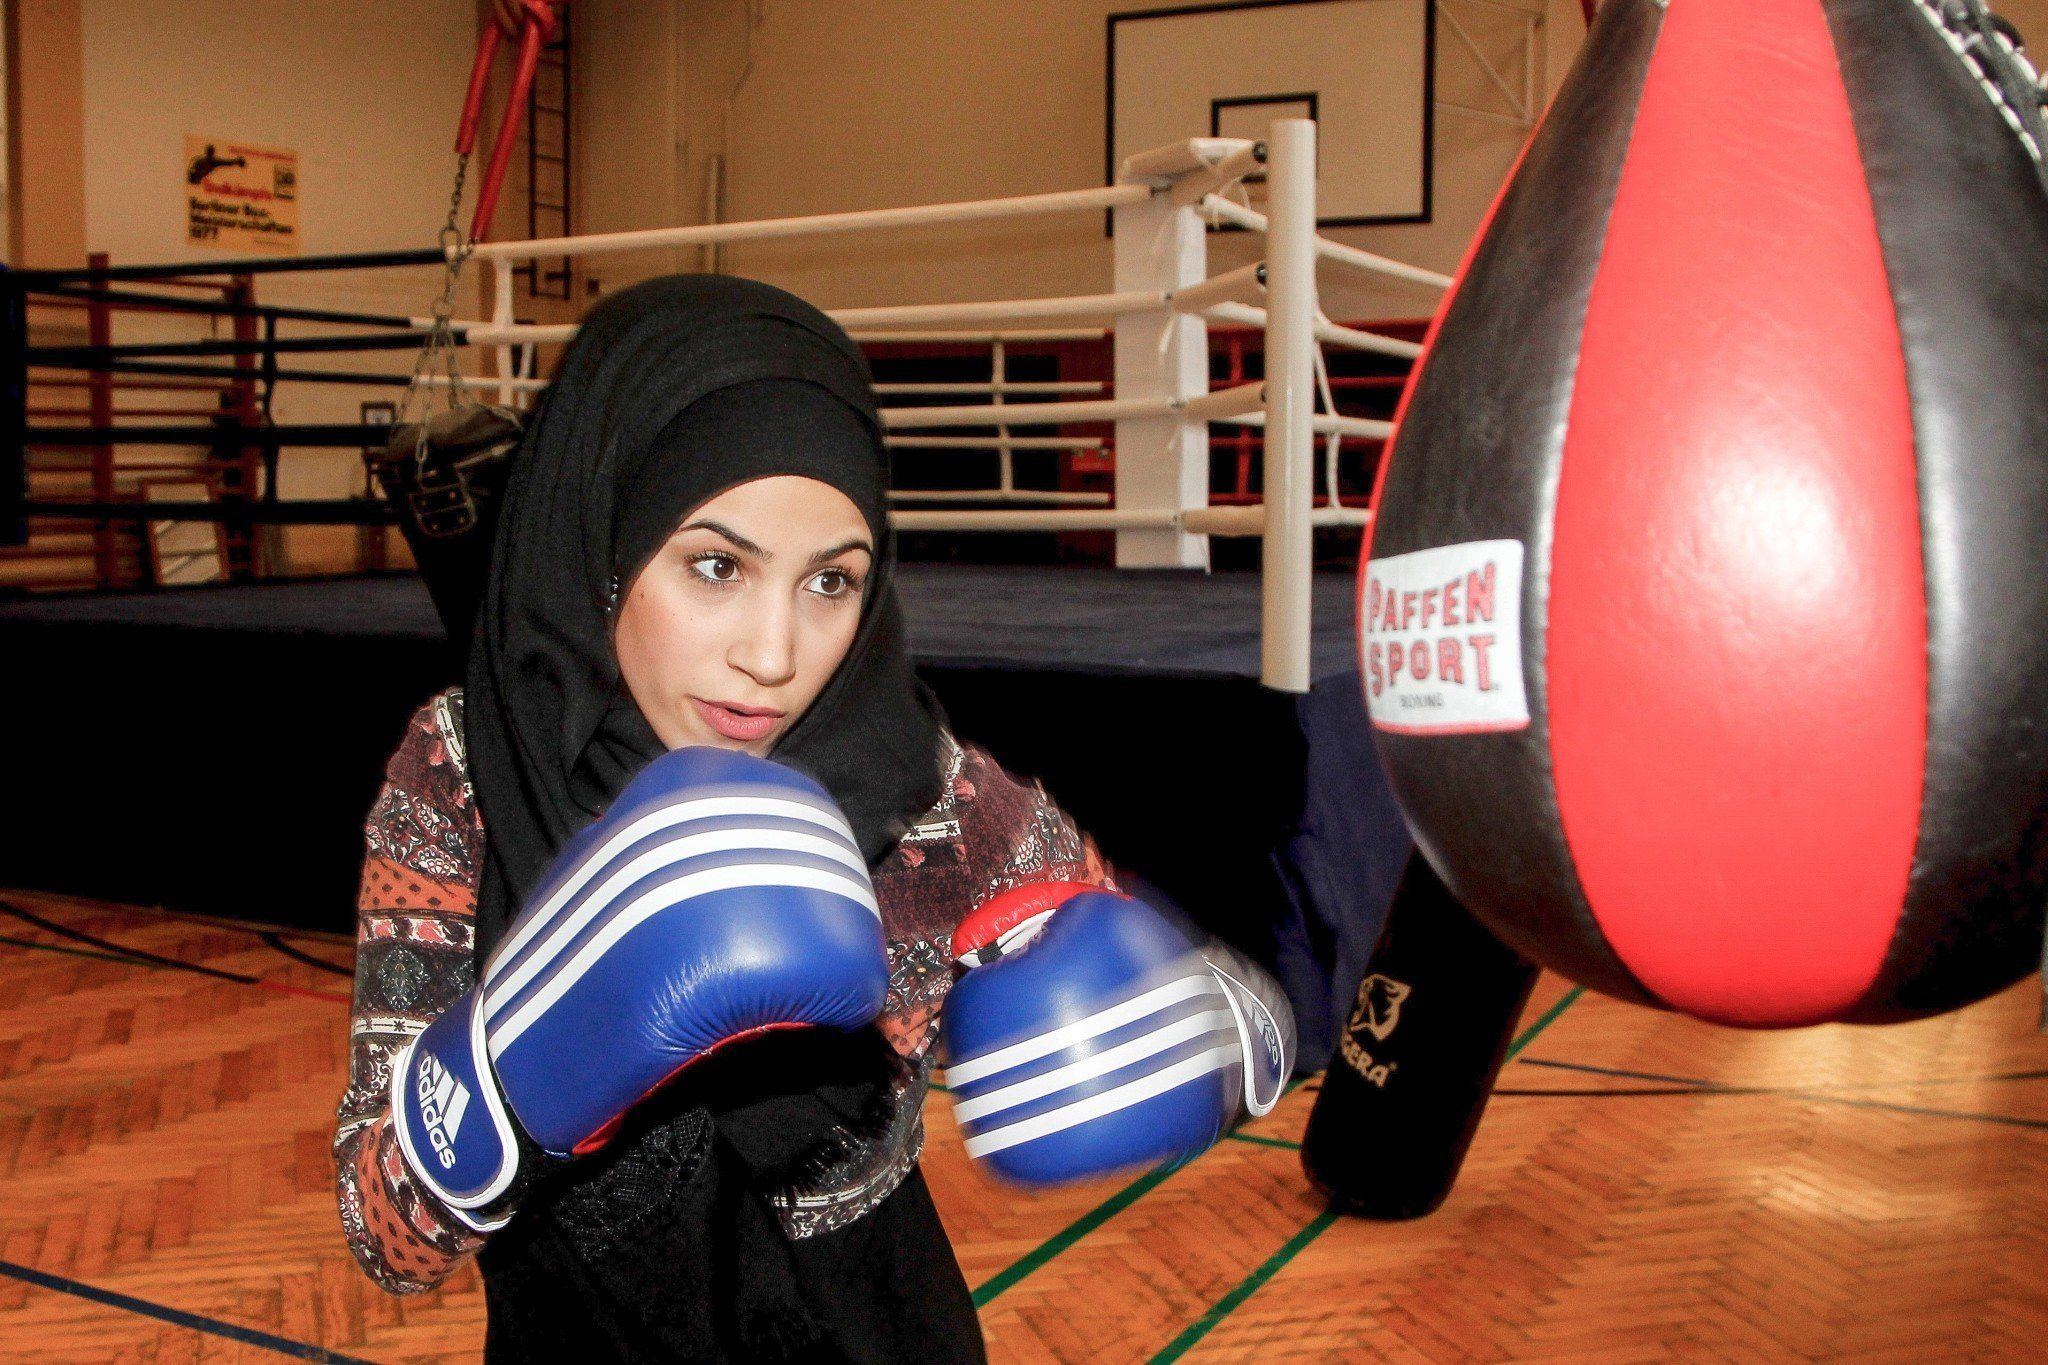 Amateur Female Boxers Can Now Wear Hijabs And Head